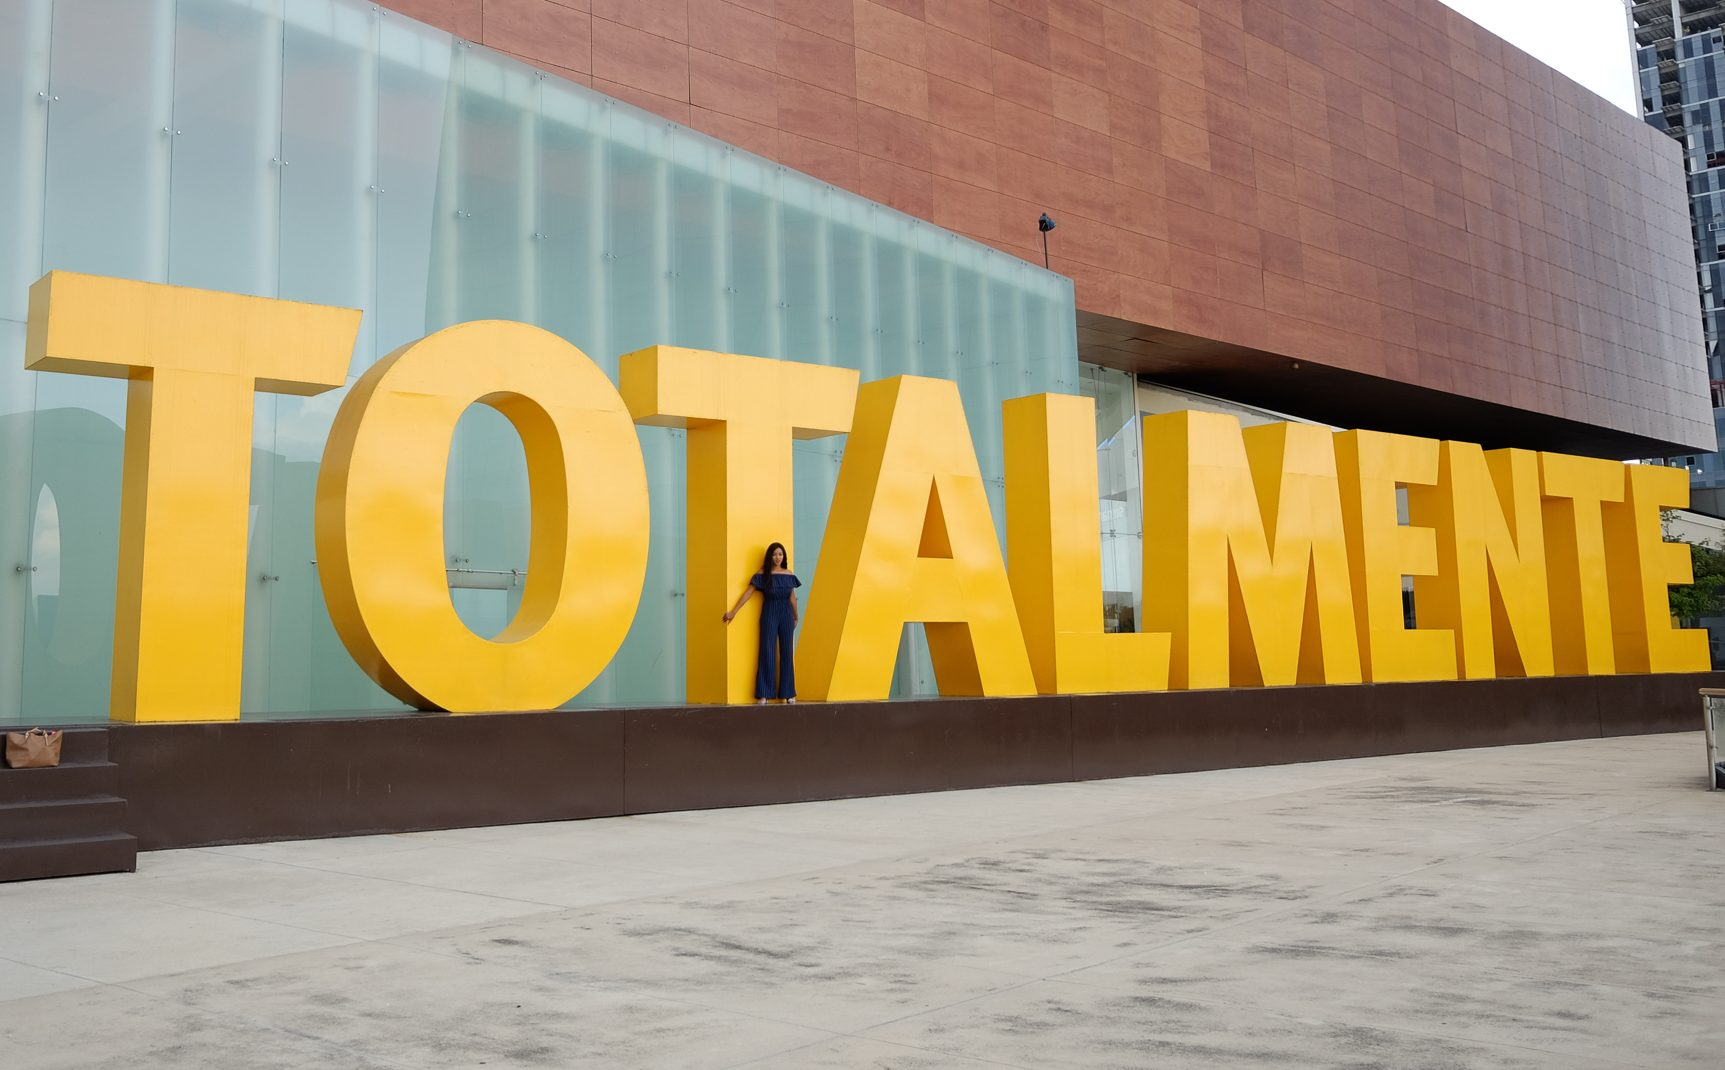 me in front of the totalmente sign in Guadalajara